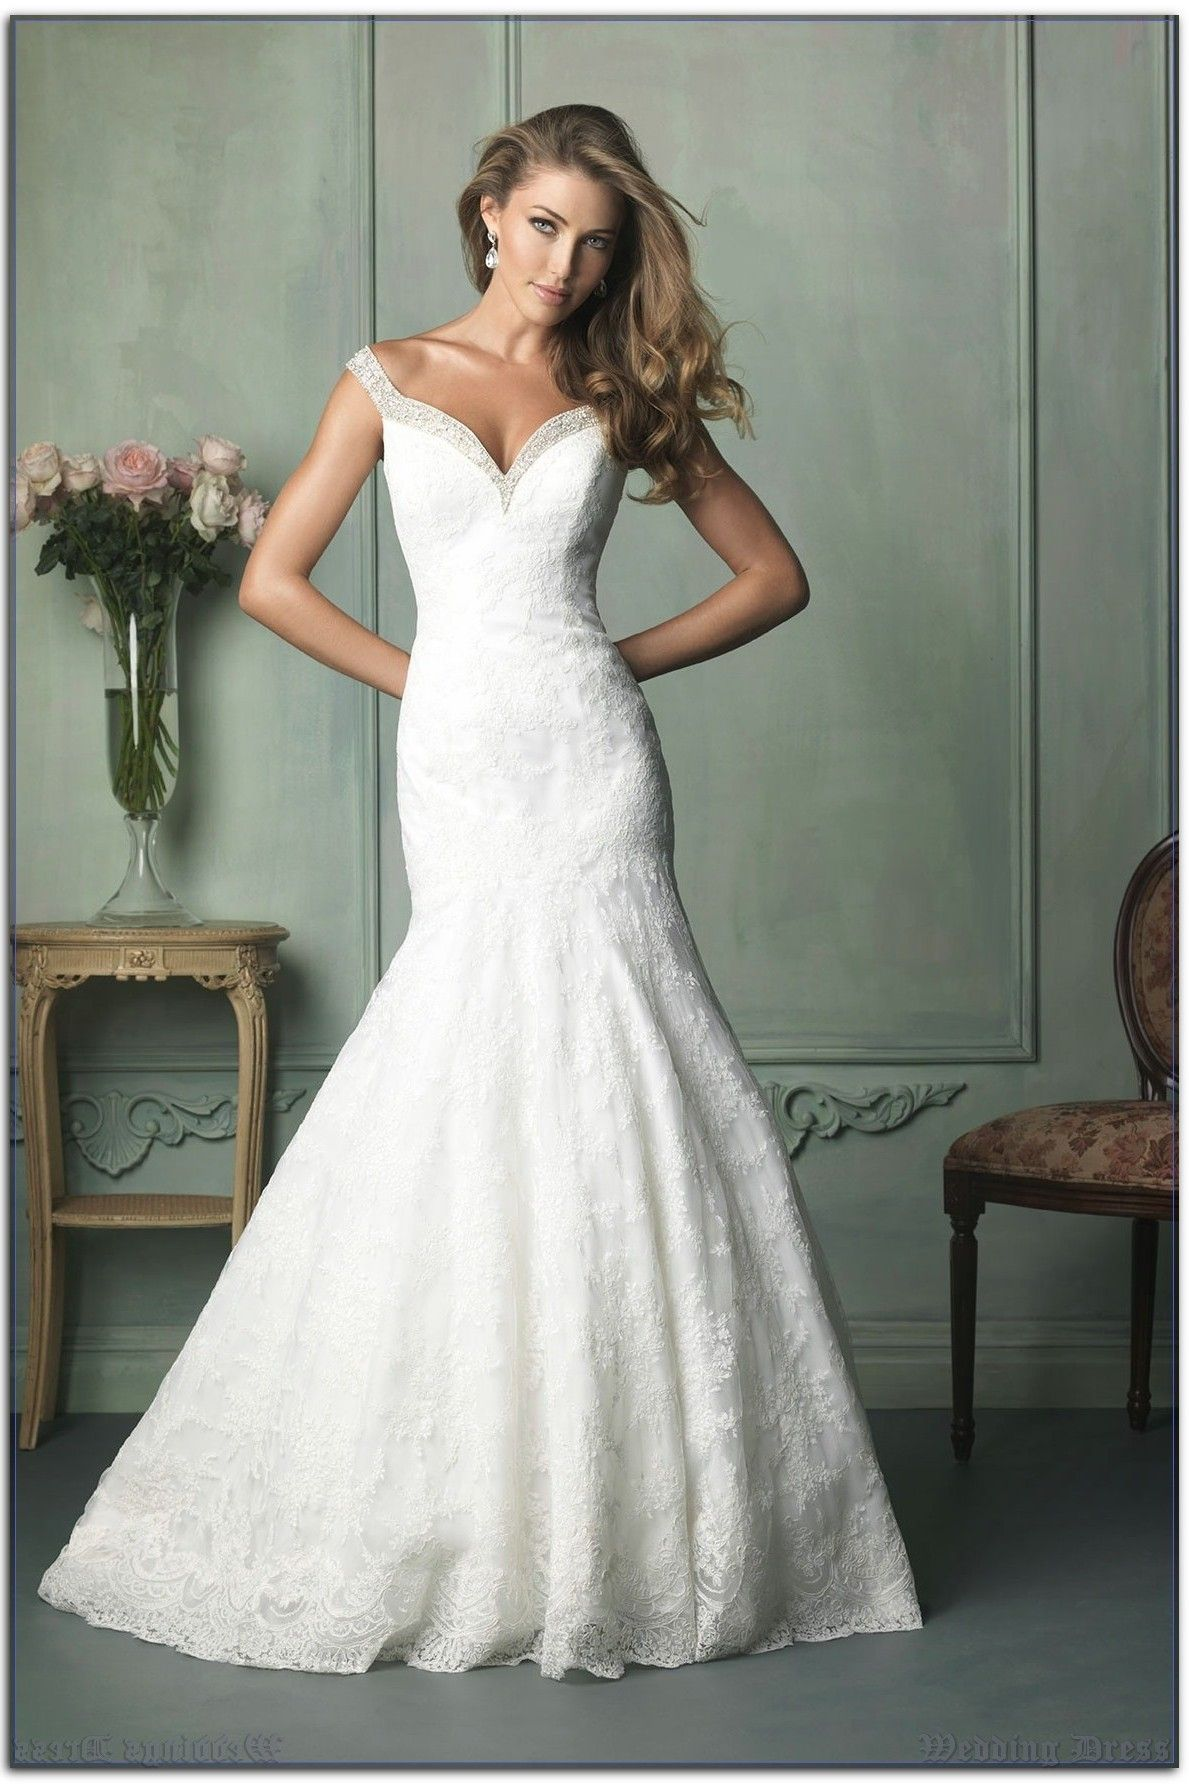 Can You Really Find Weddings Dress (on the Web)?